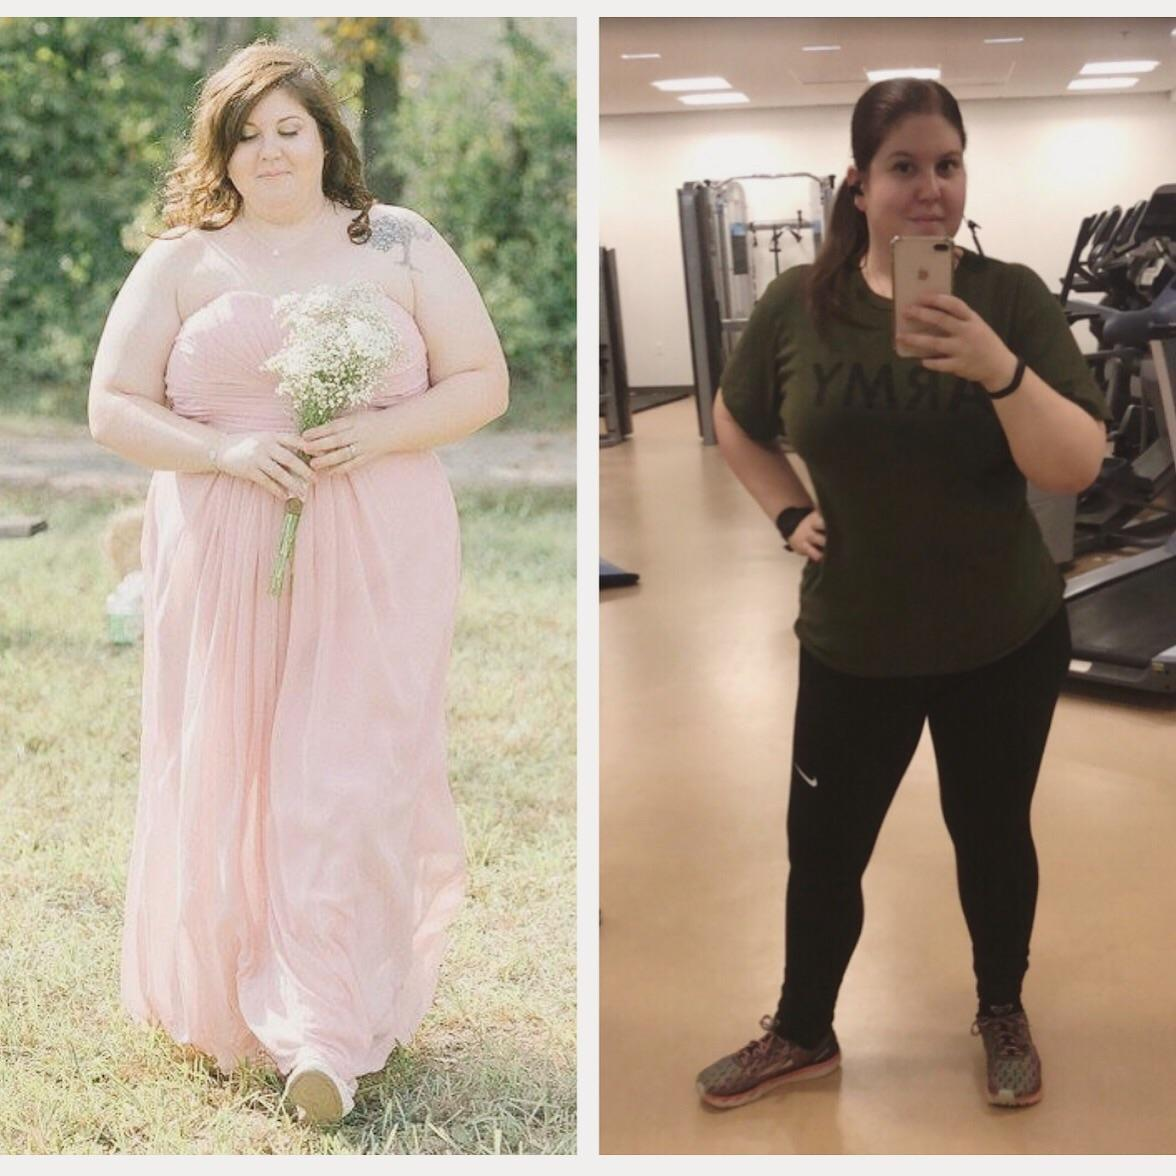 Before and After 60 lbs Weight Loss 5 foot 7 Female 290 lbs to 230 lbs